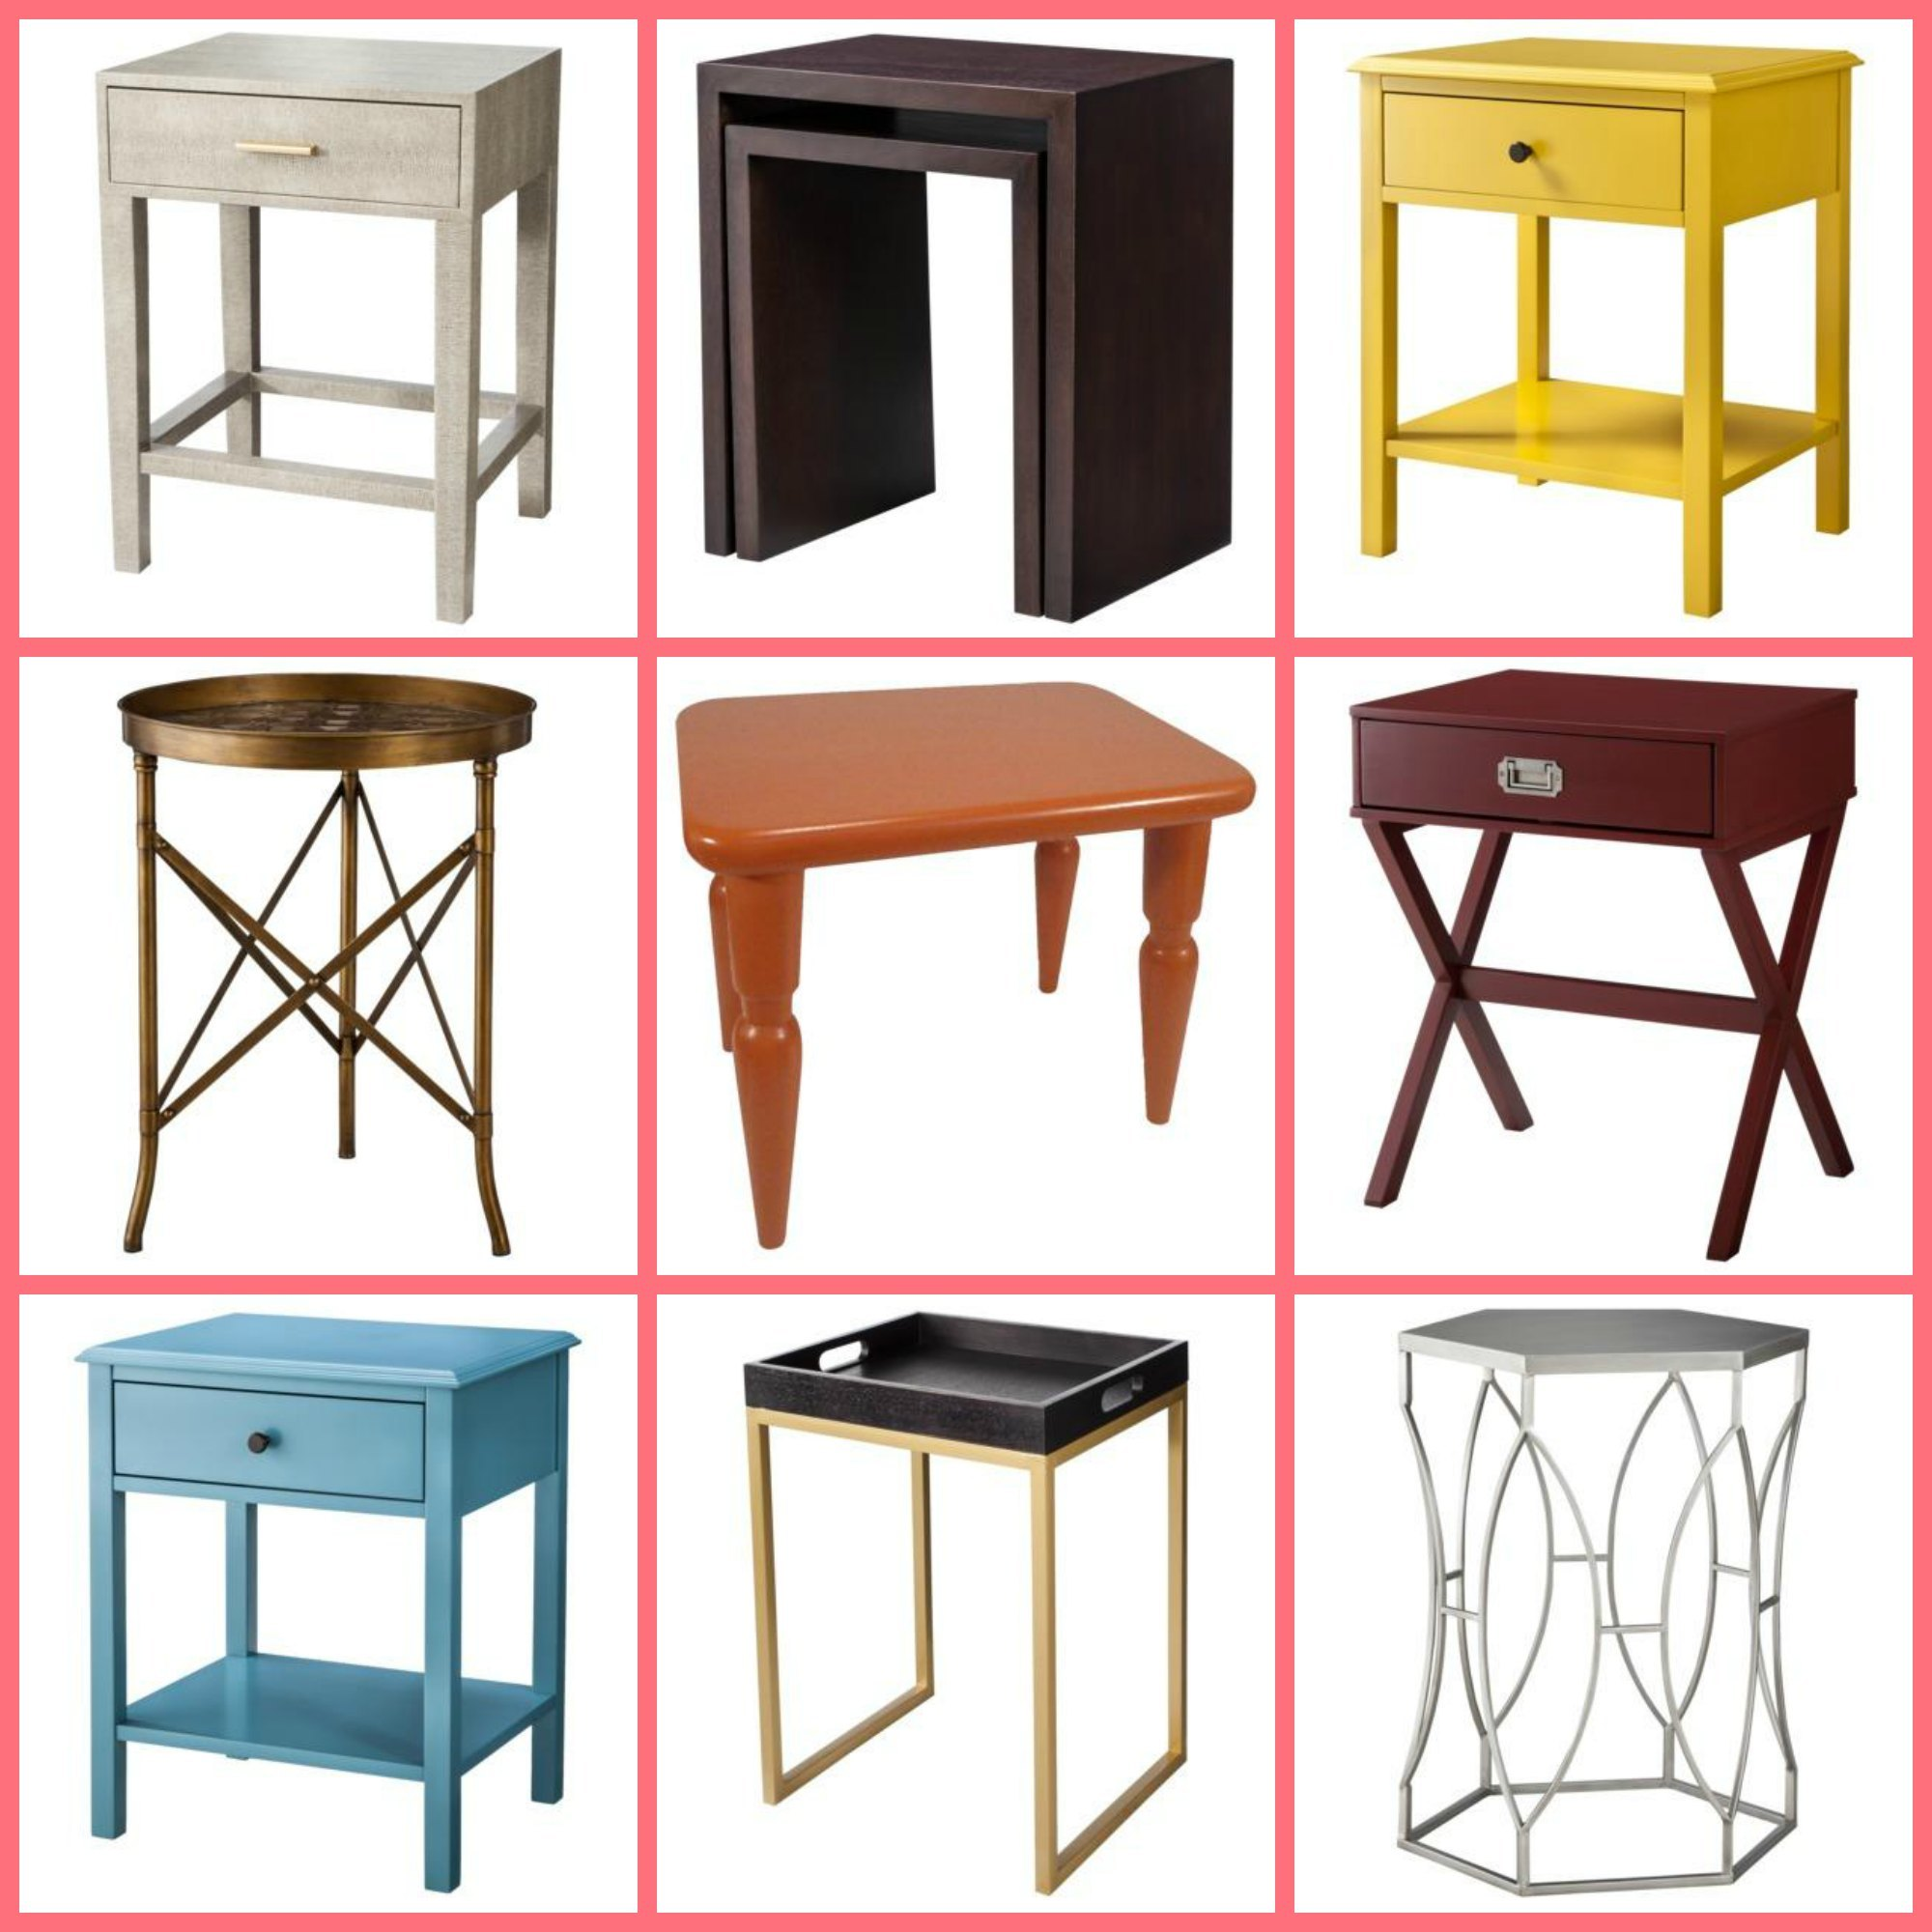 target threshold accent tables take your targertthr table marble clockwise from top left patio furniture and chairs garden sets battery lamp yellow tablecloth pine wood west elm